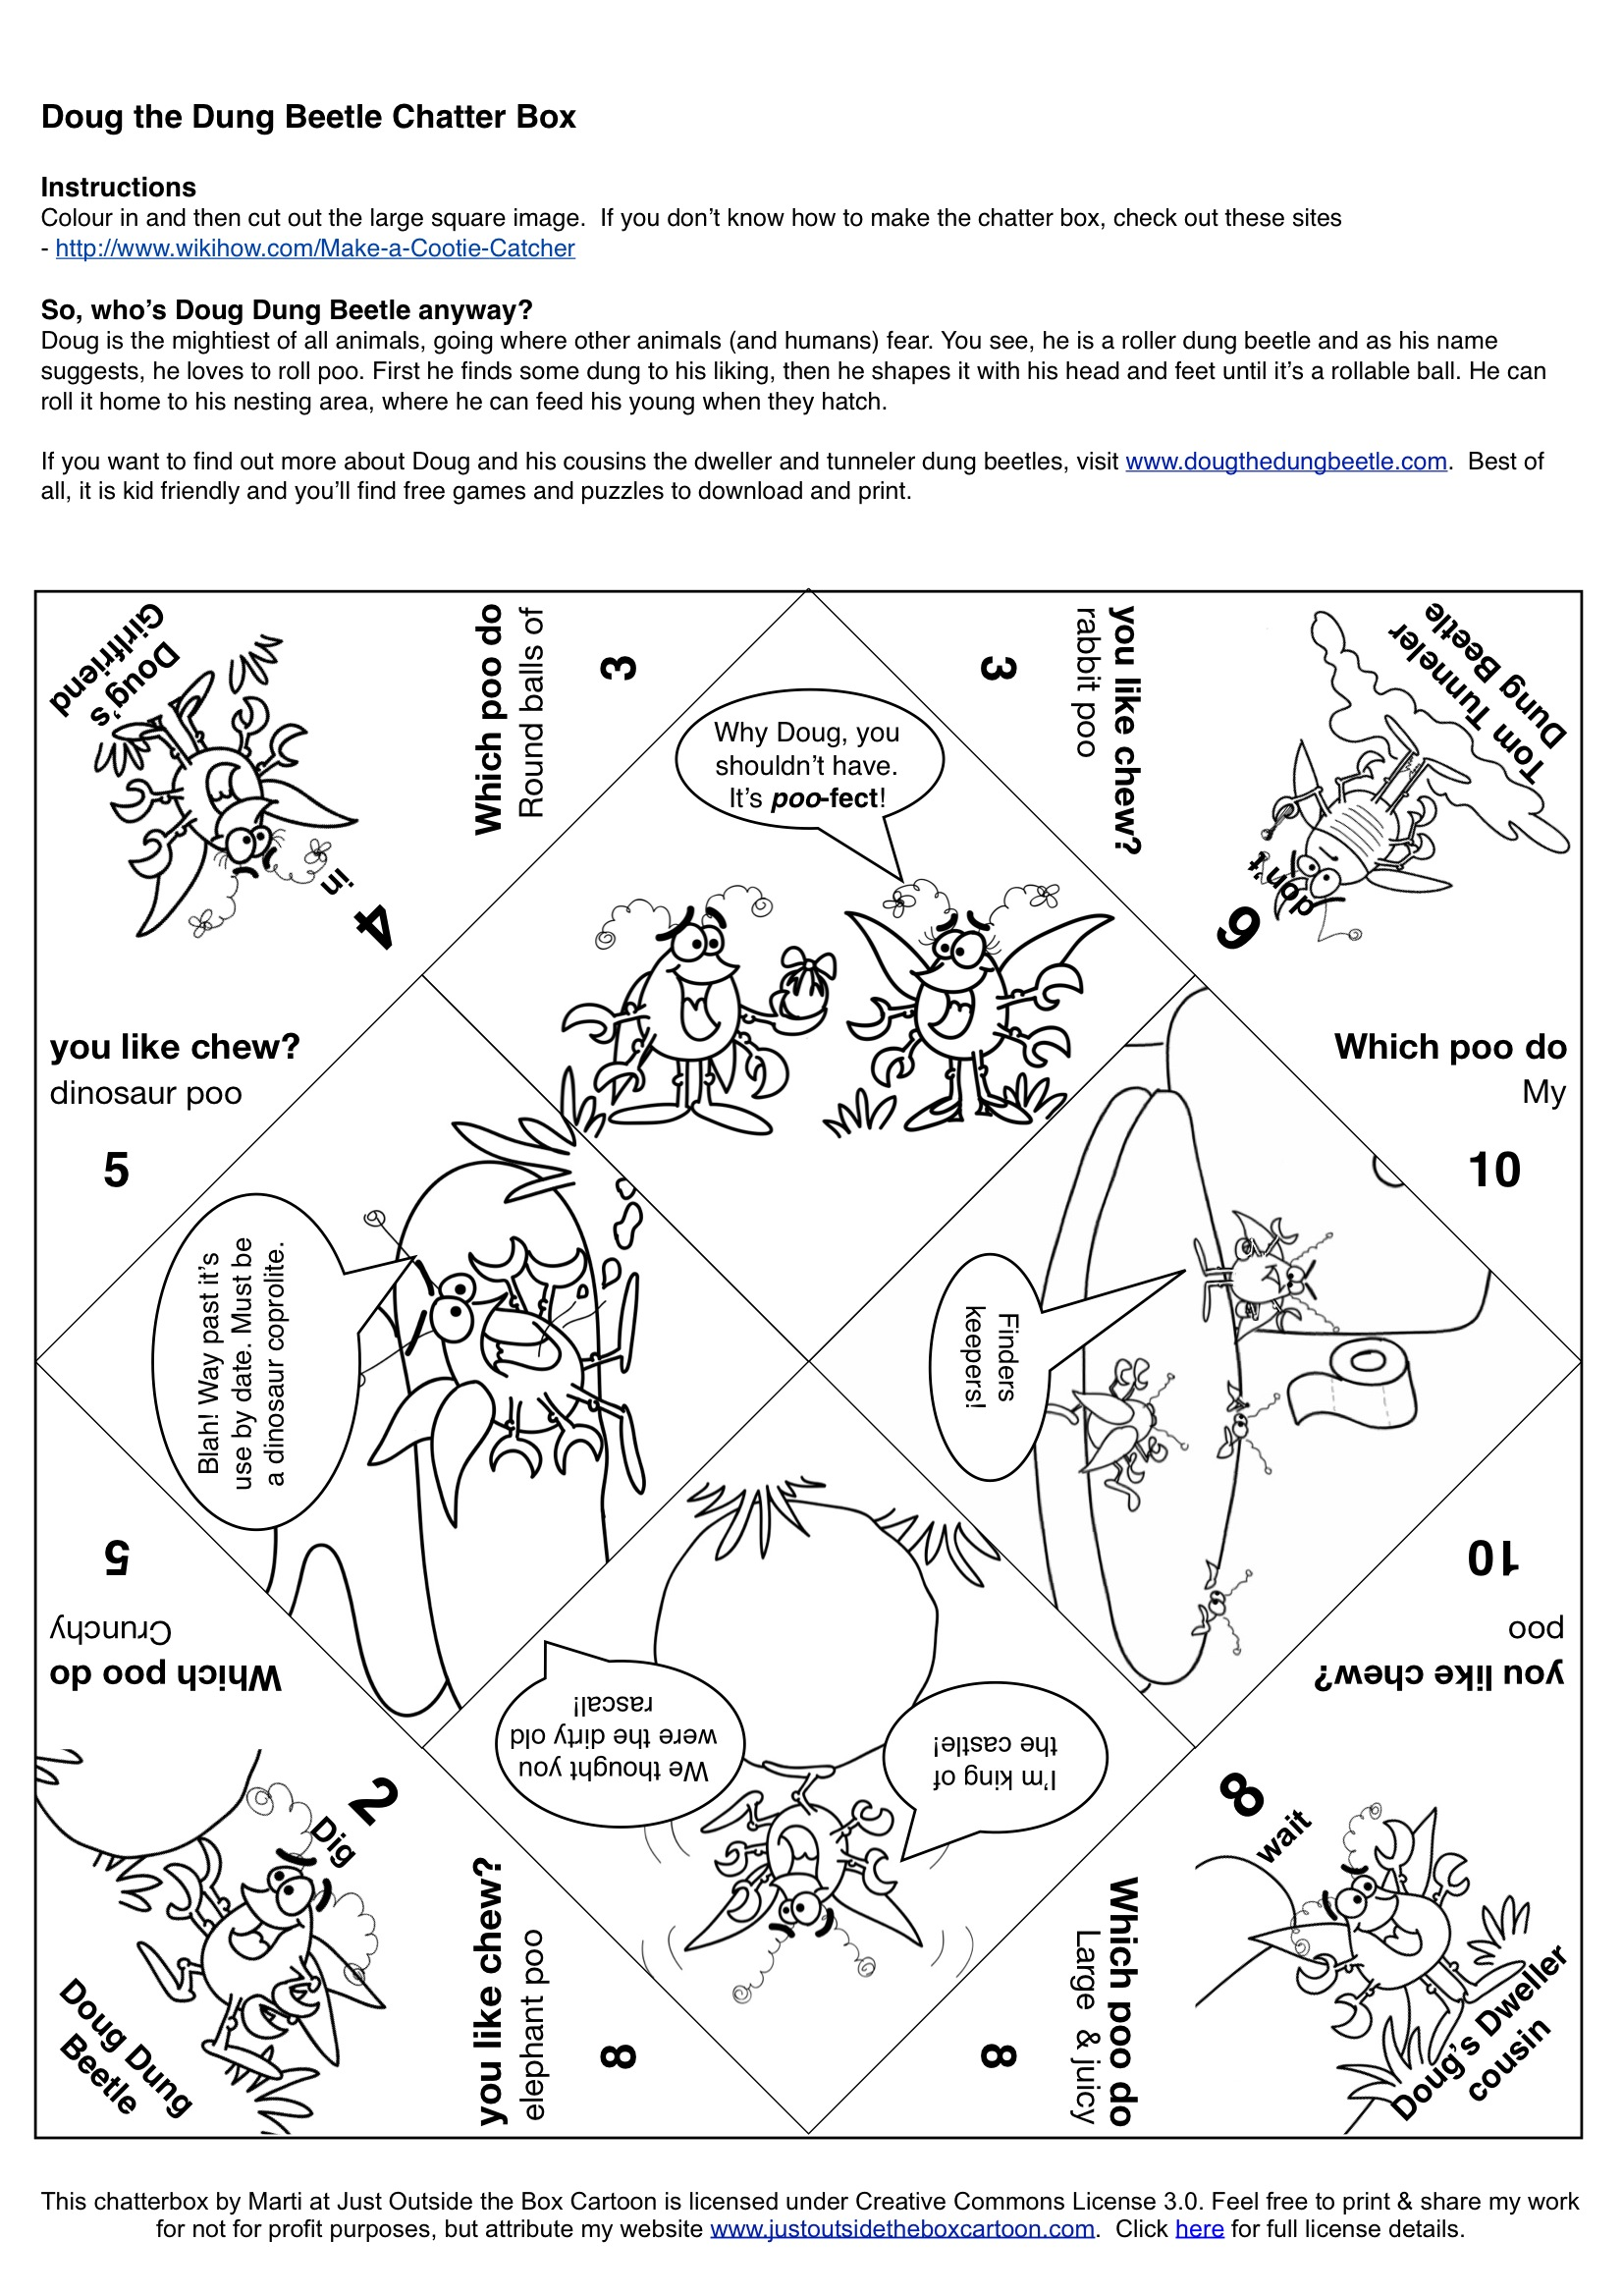 Cootie catcher archives just outside the box cartoon for How to make a chatterbox template